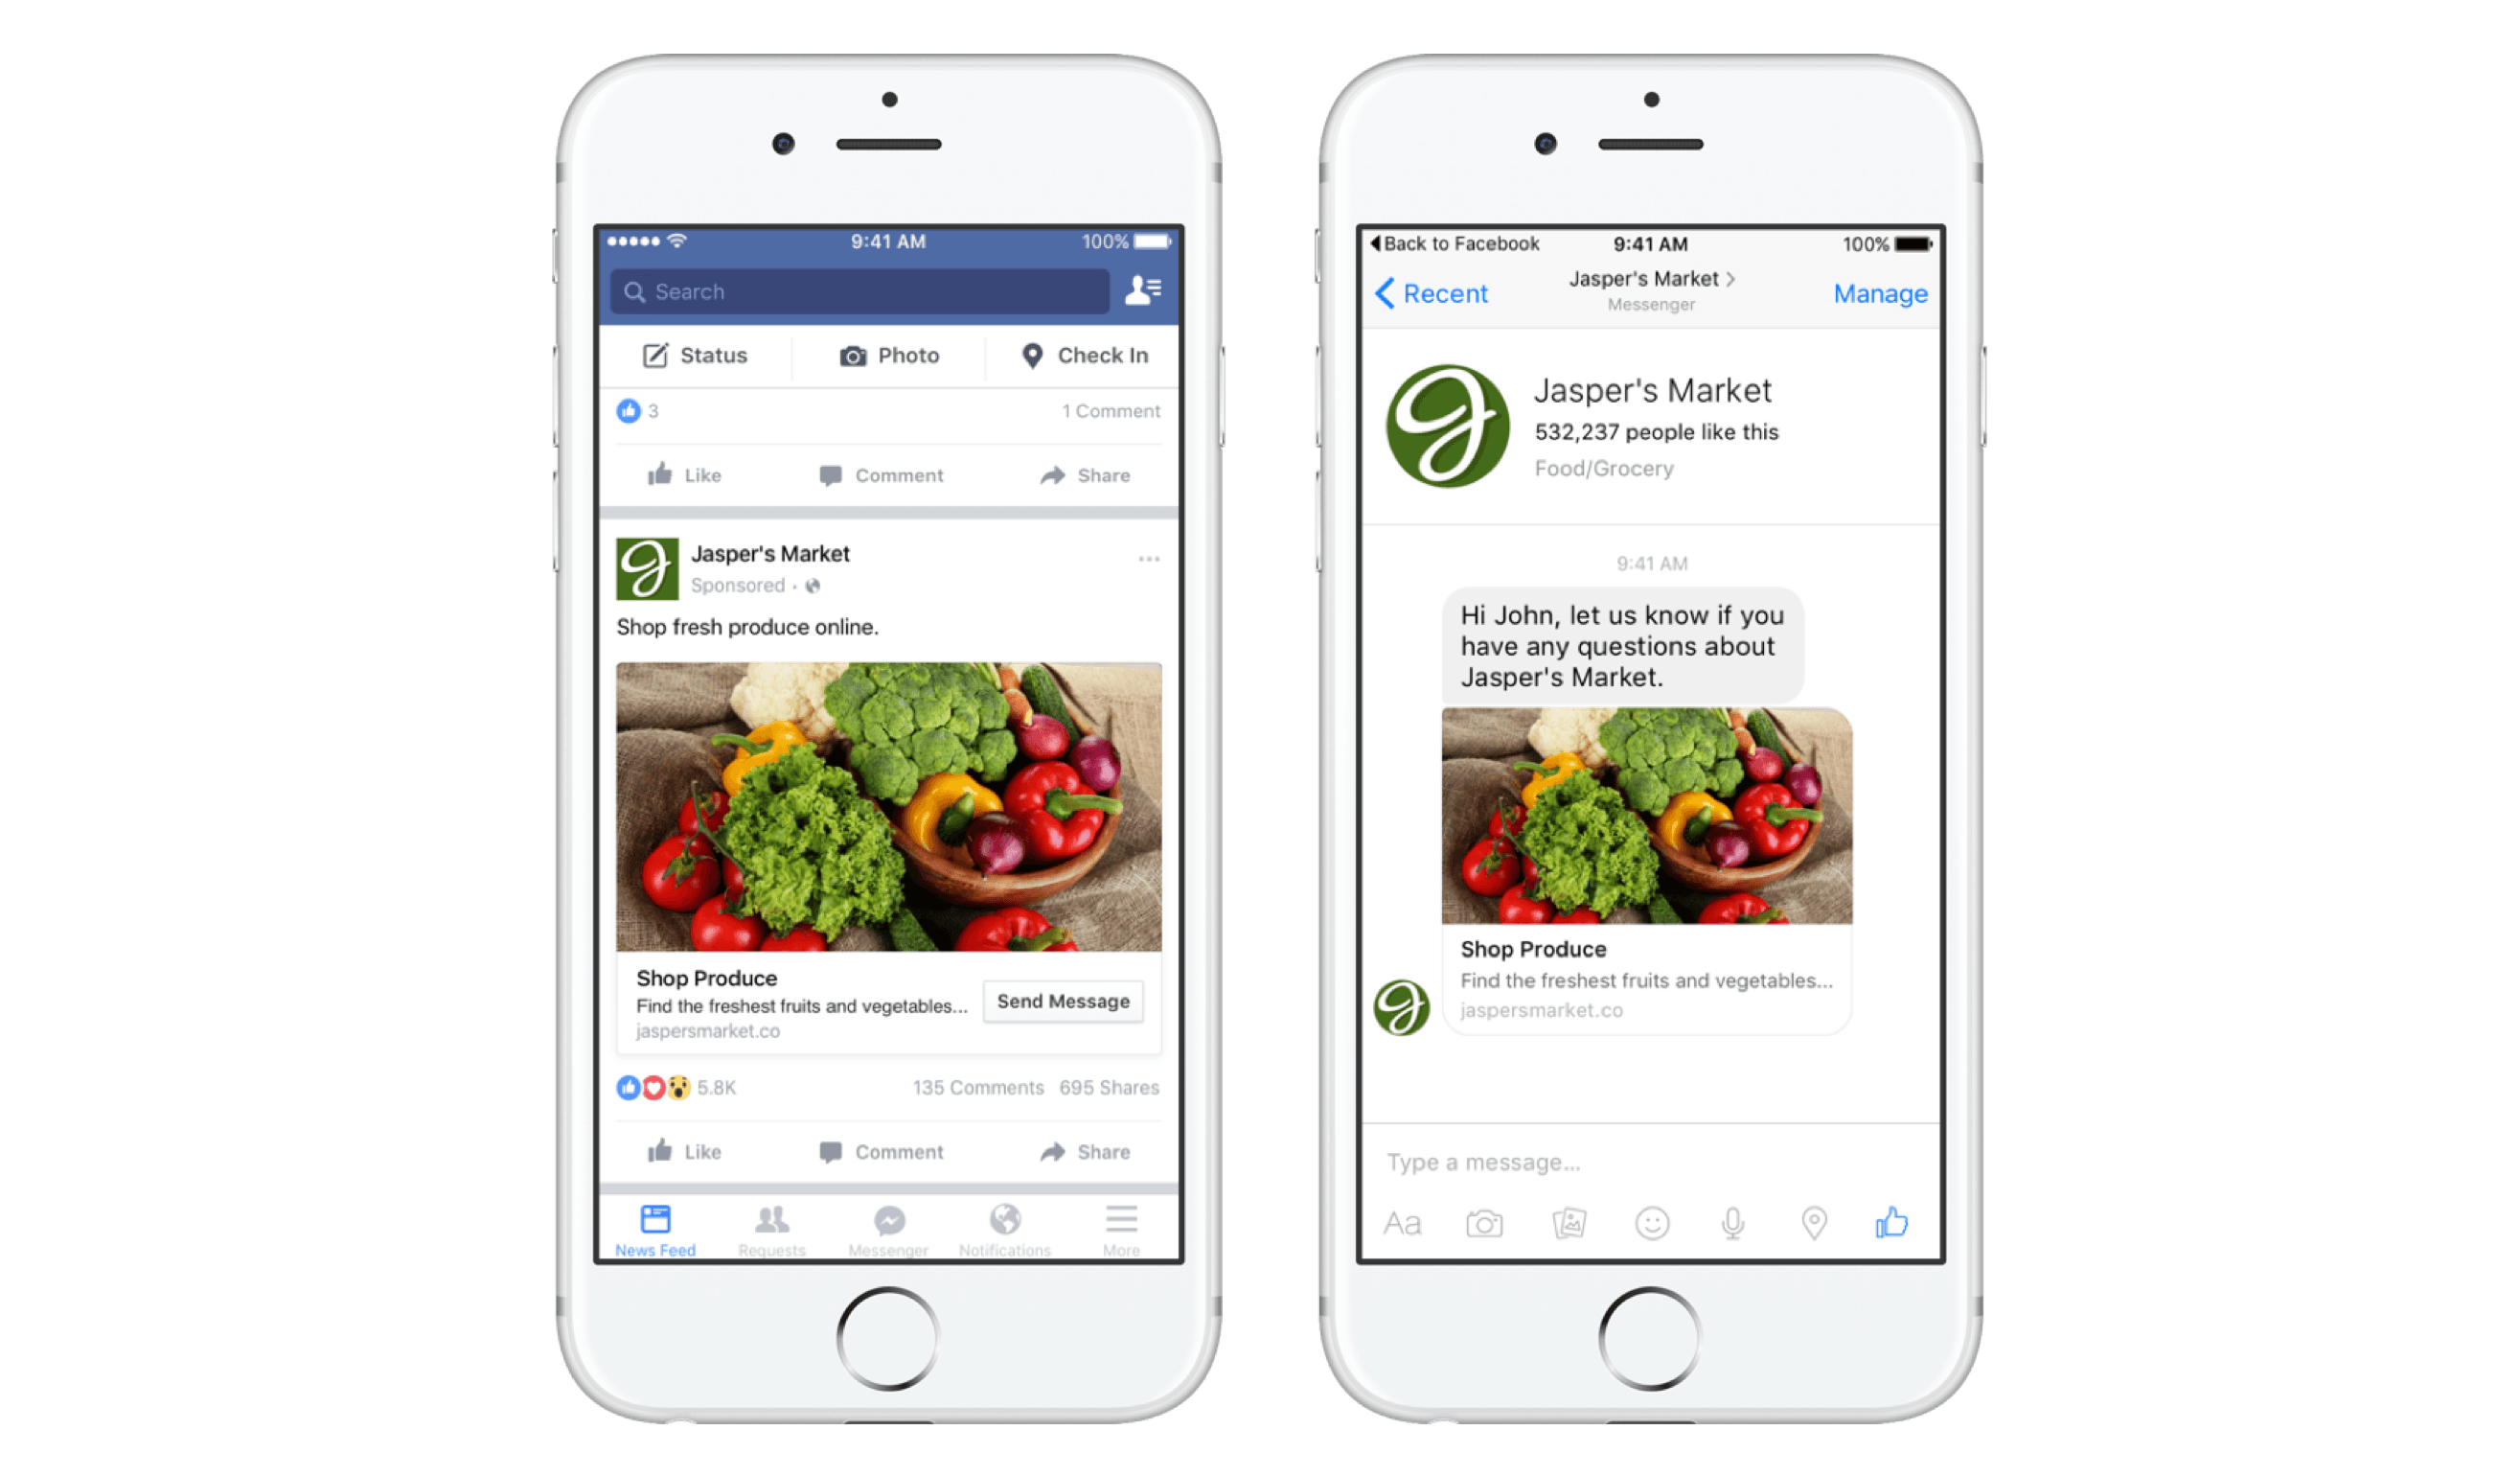 Facebook Messenger Ads: The Latest Updates and Best Practices